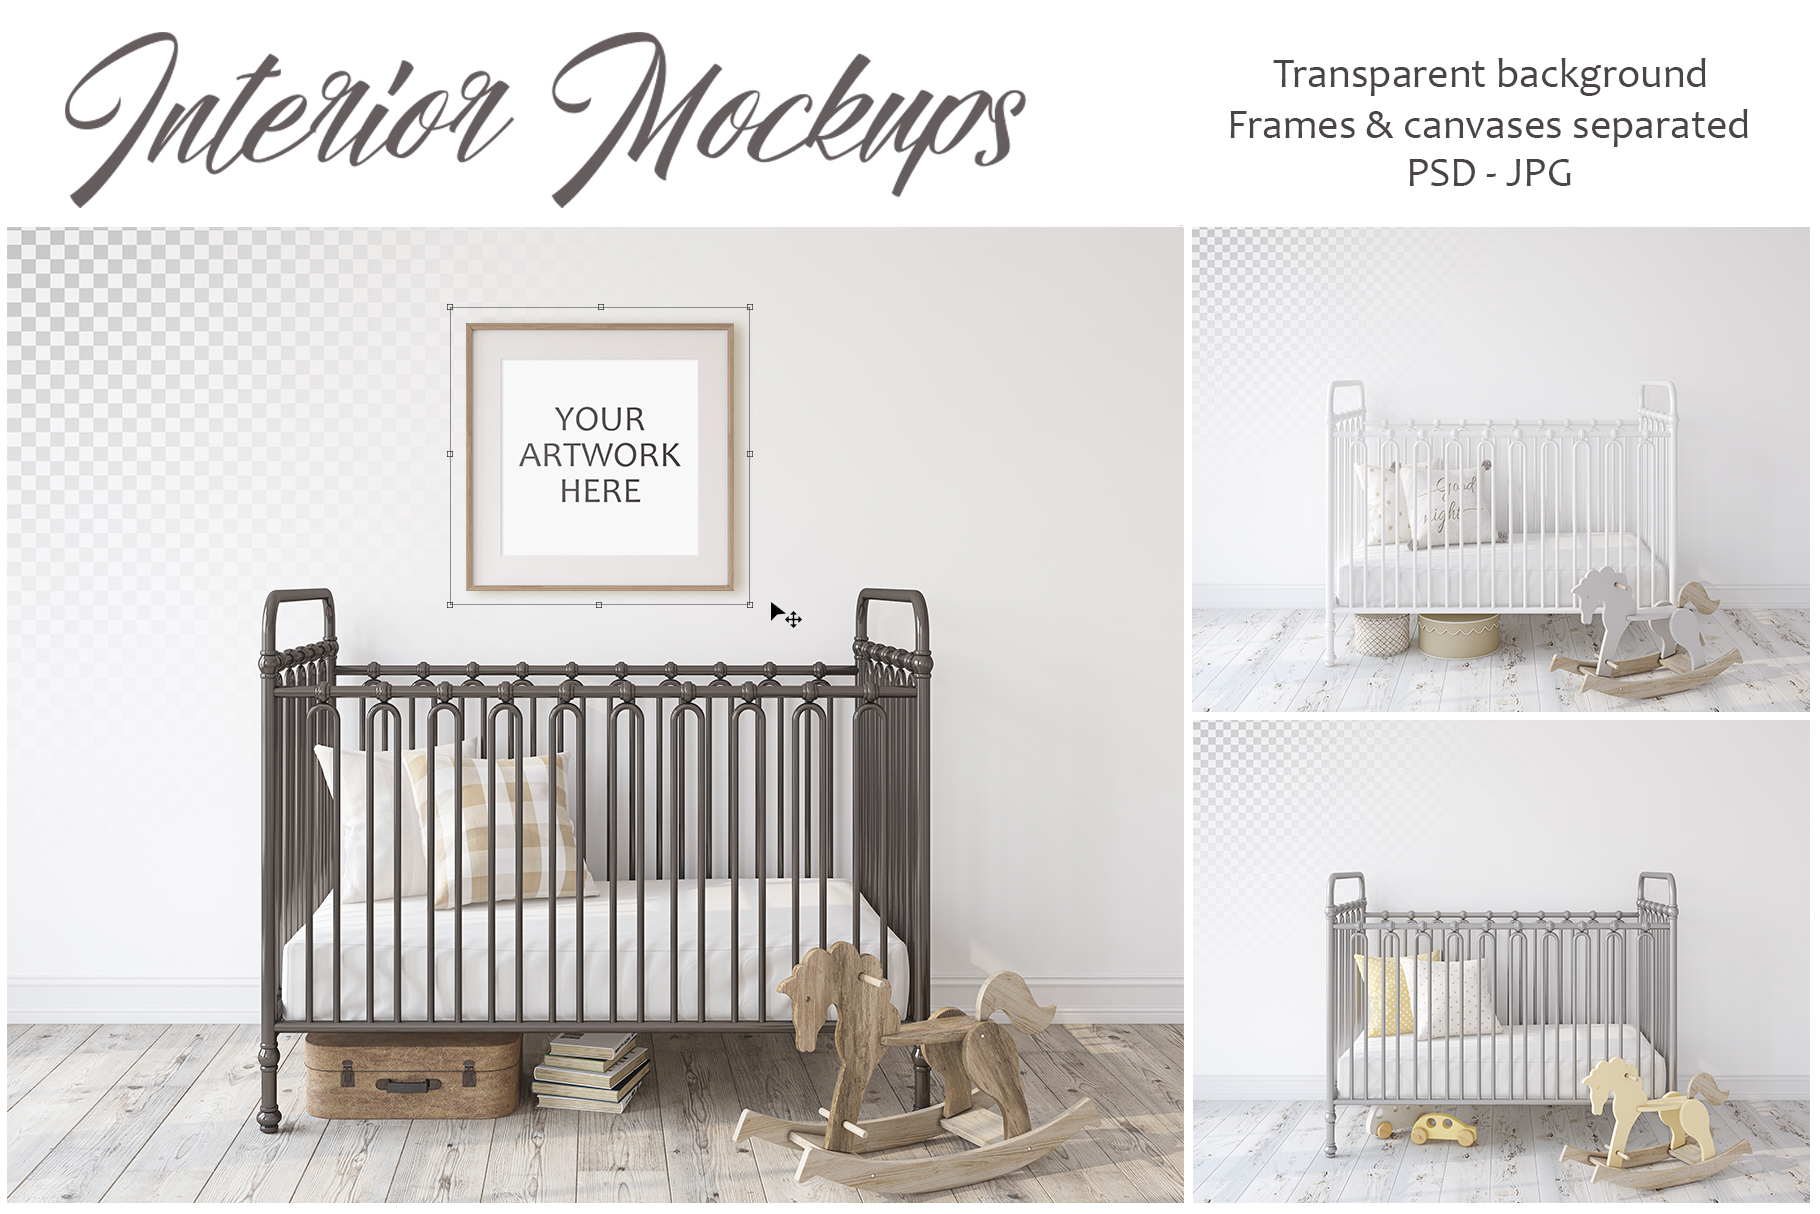 Metal crib. Wall&Frames Mockup. example image 1